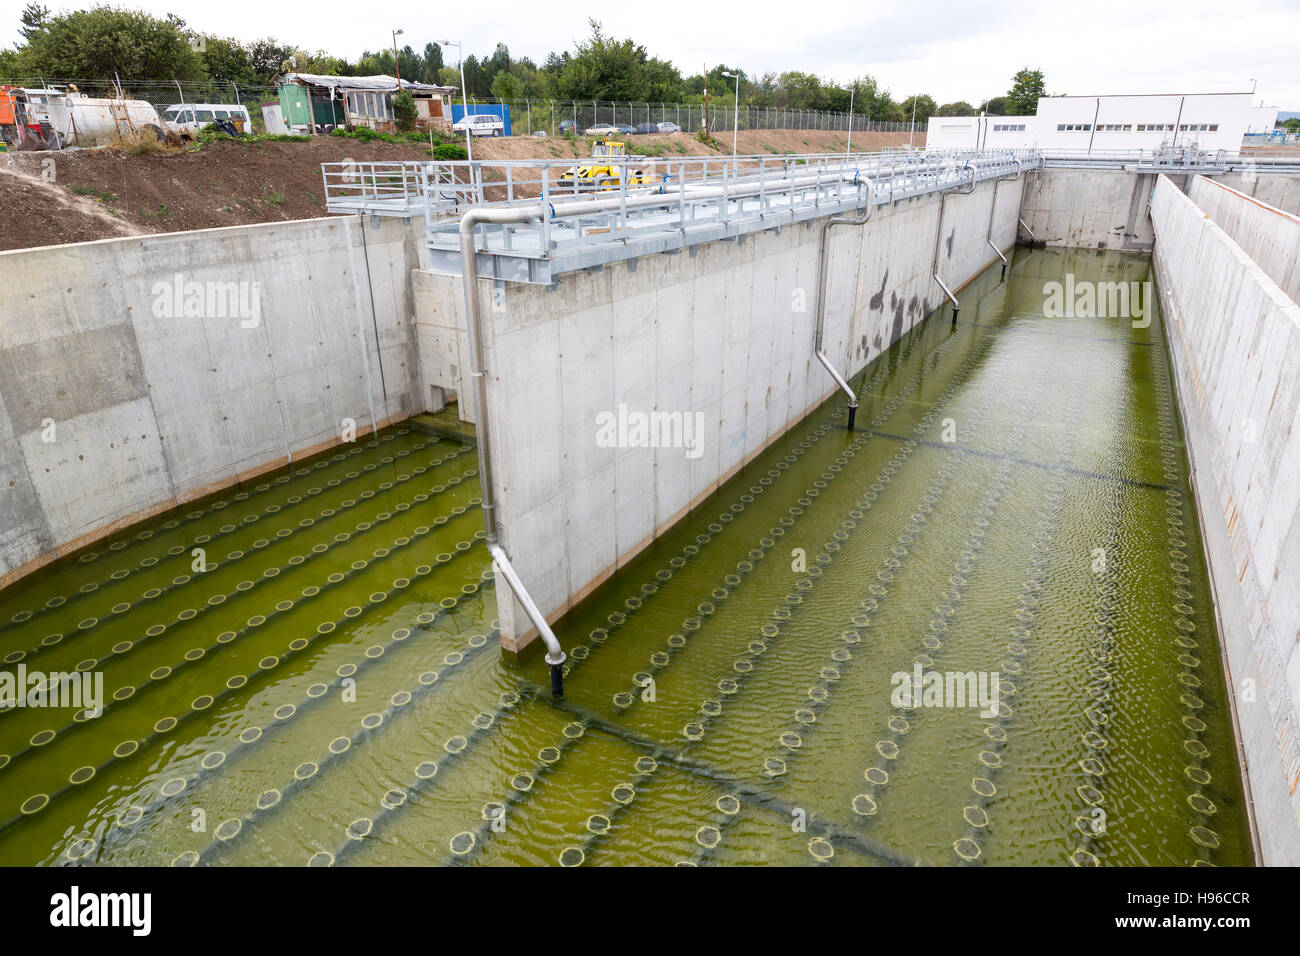 Modern urban wastewater treatment plant. Water cleaning facility outdoors. Water purification is the process of - Stock Image